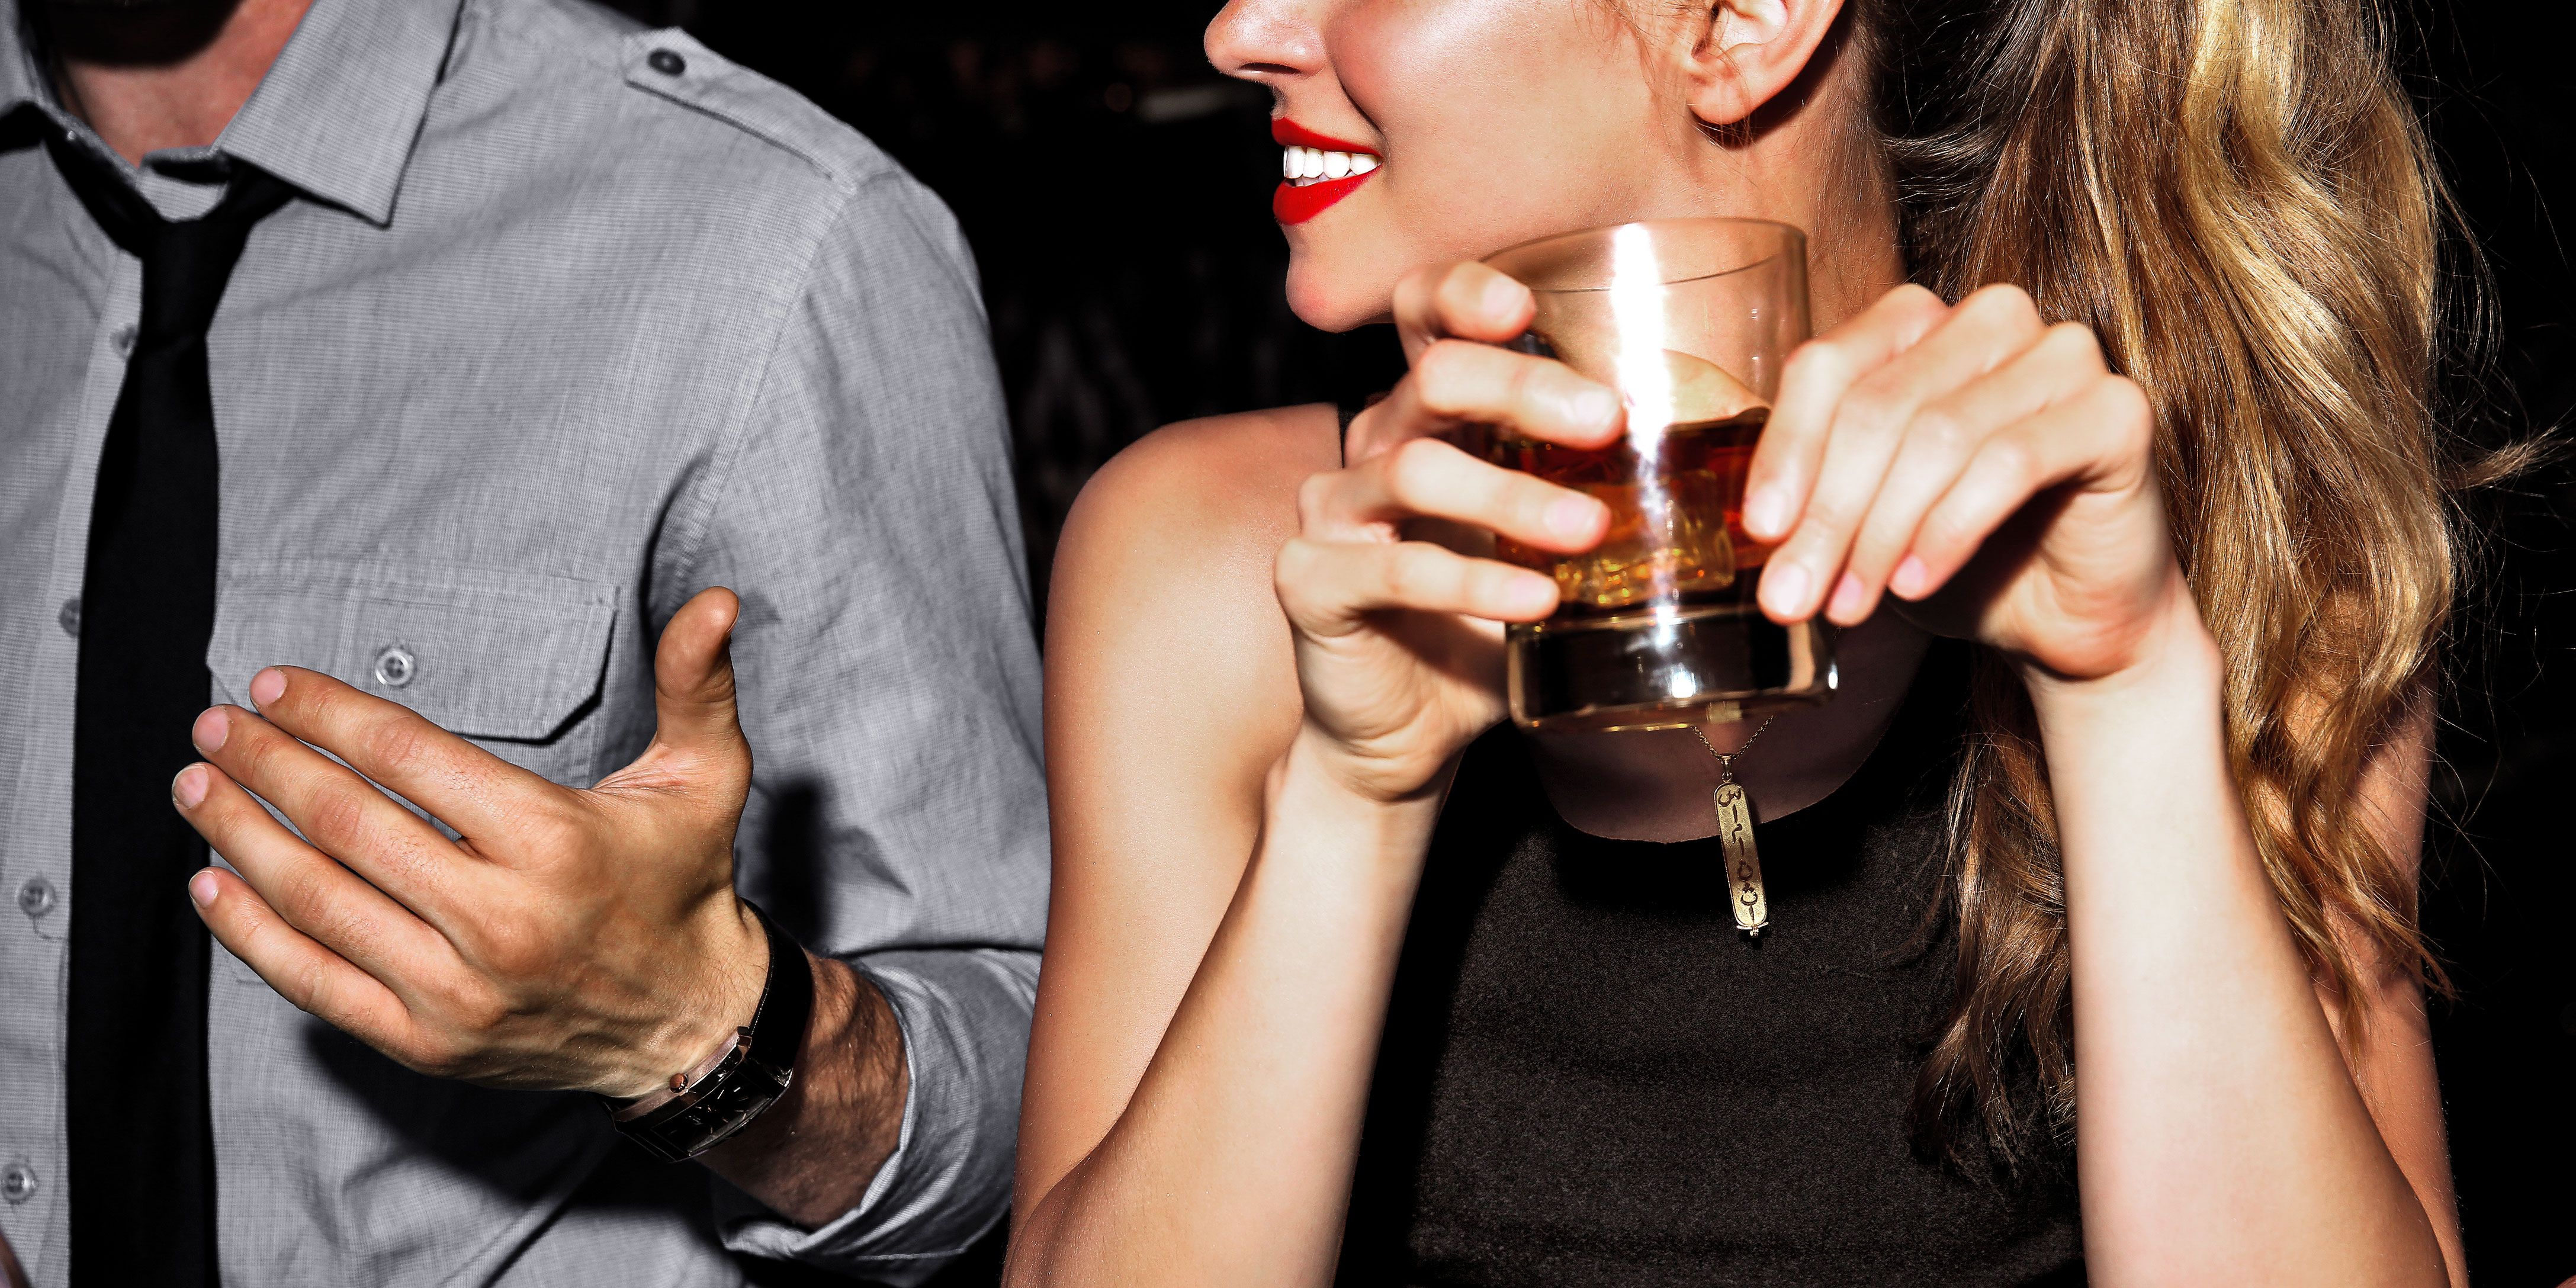 Here's How to Know If You're Micro-Cheating